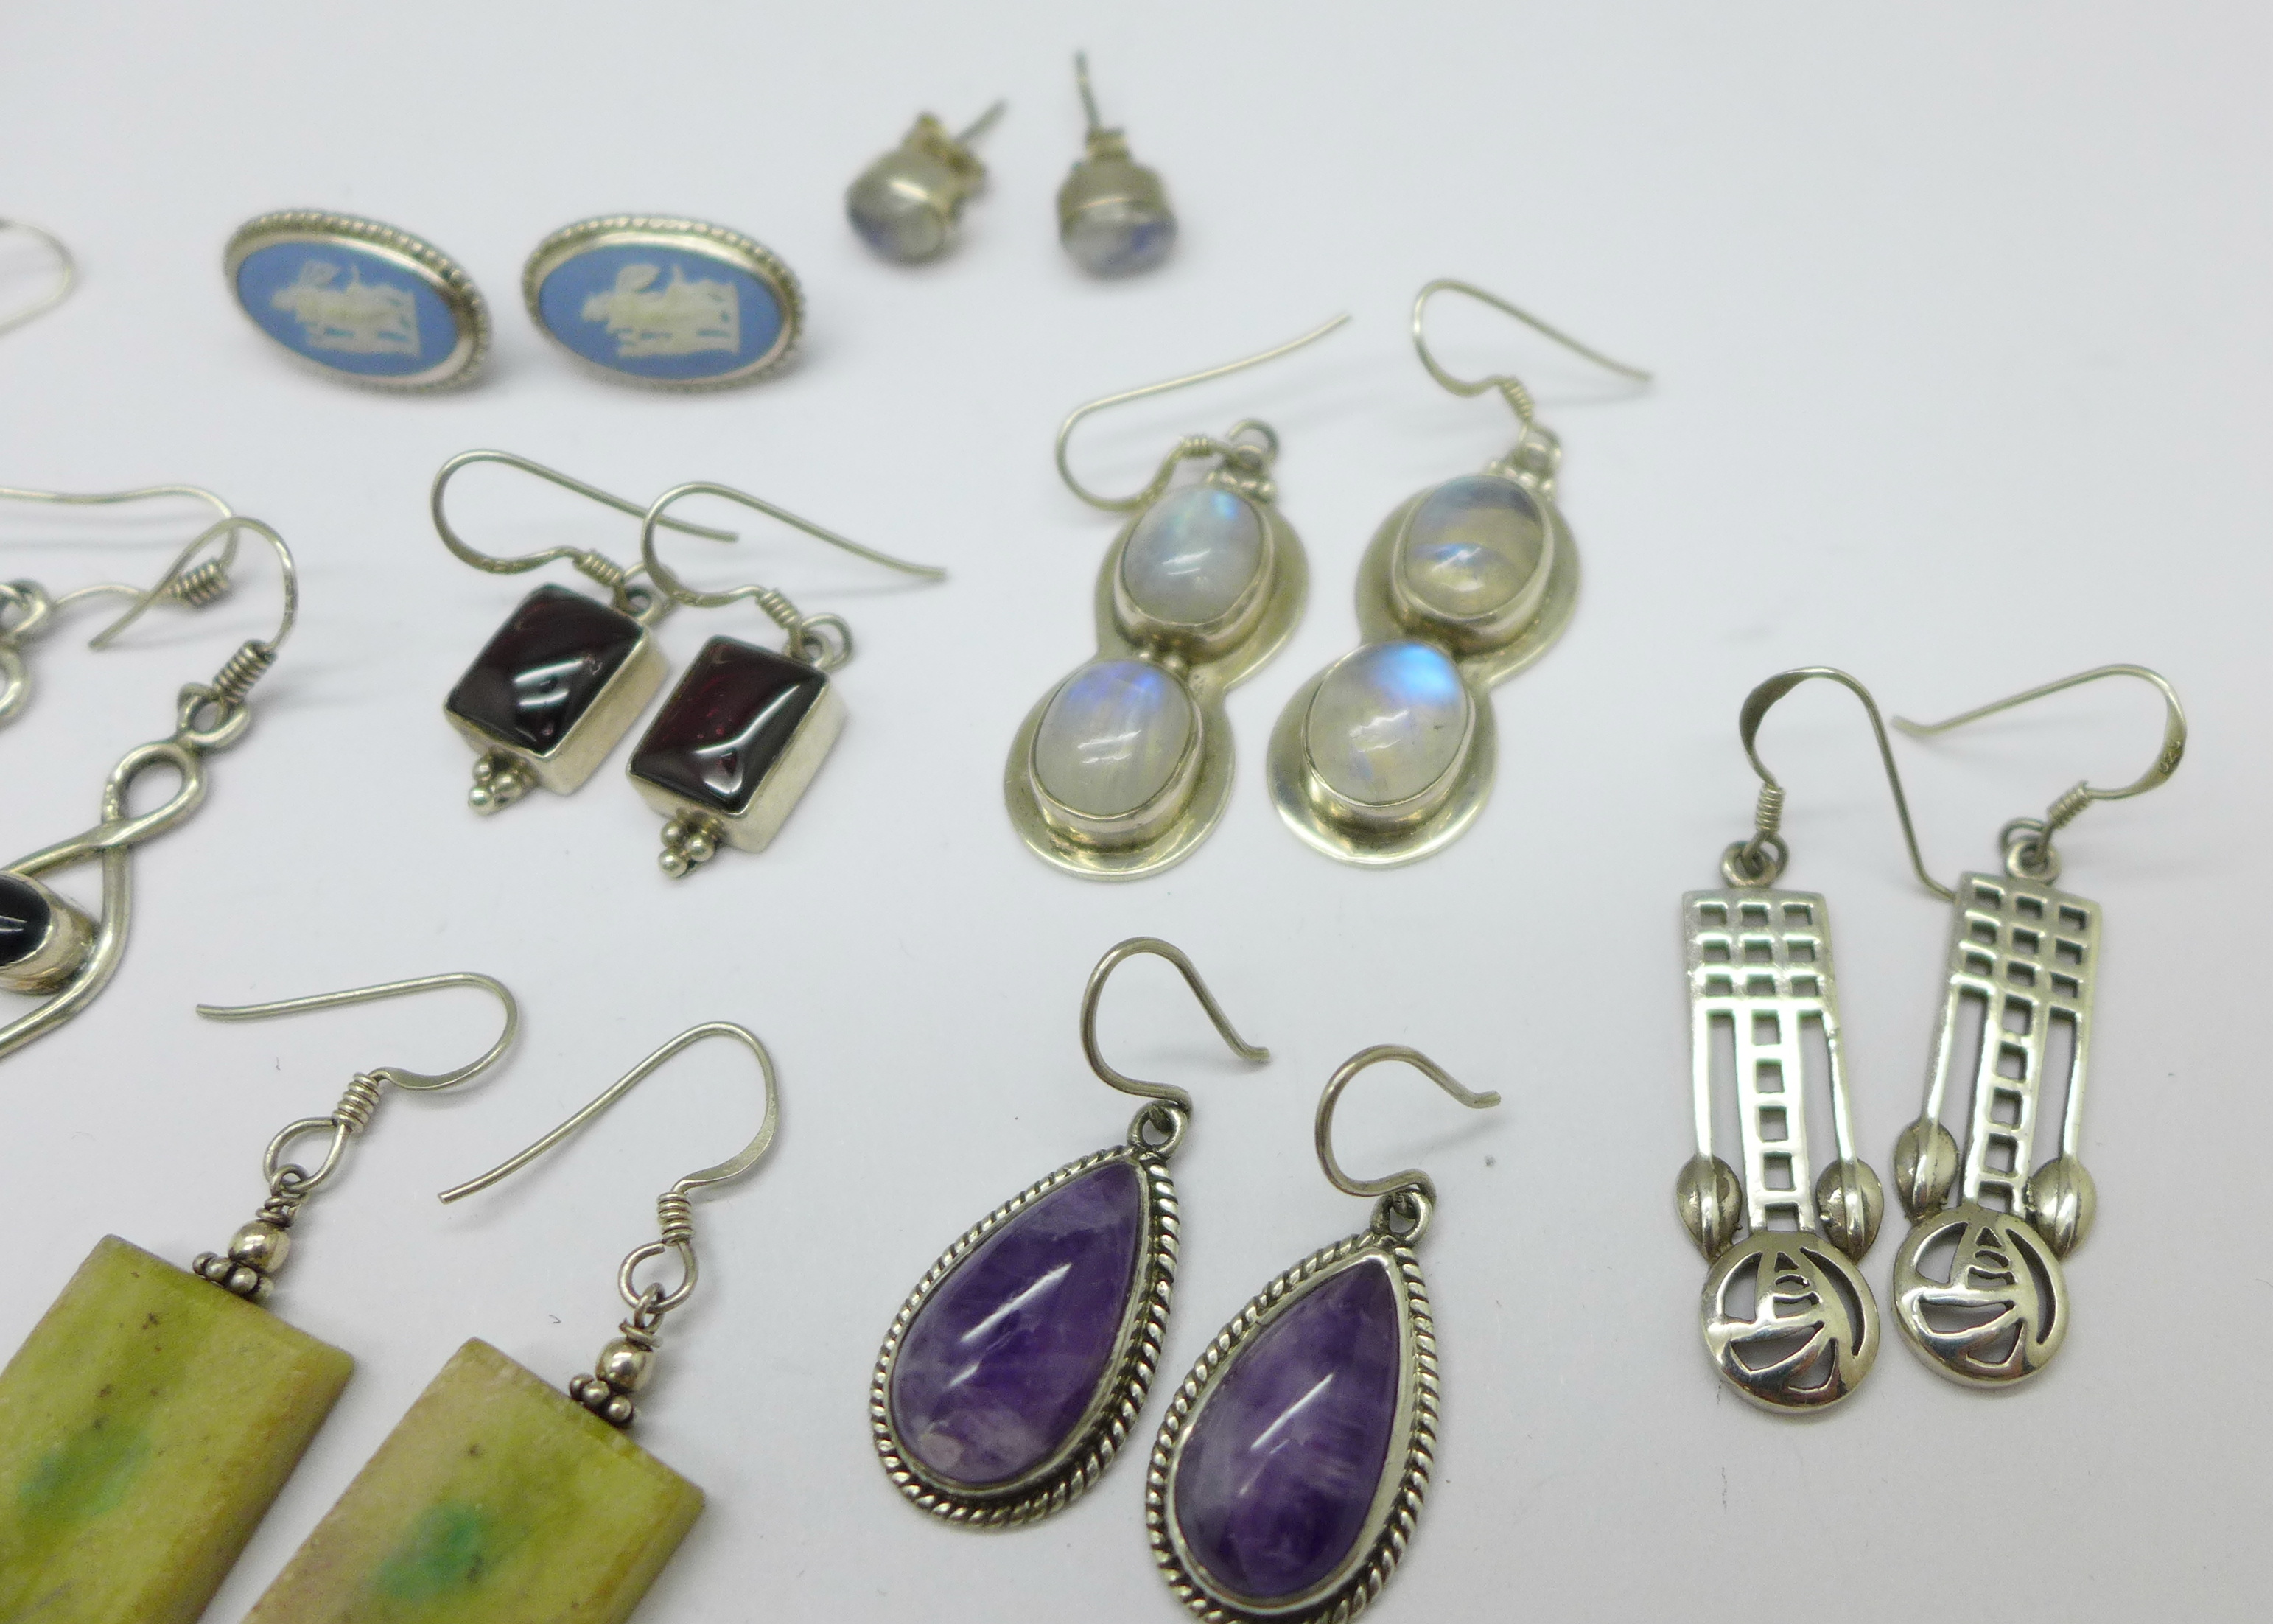 Fifteen pairs of silver and stone set earrings, total weight 60g - Image 4 of 4